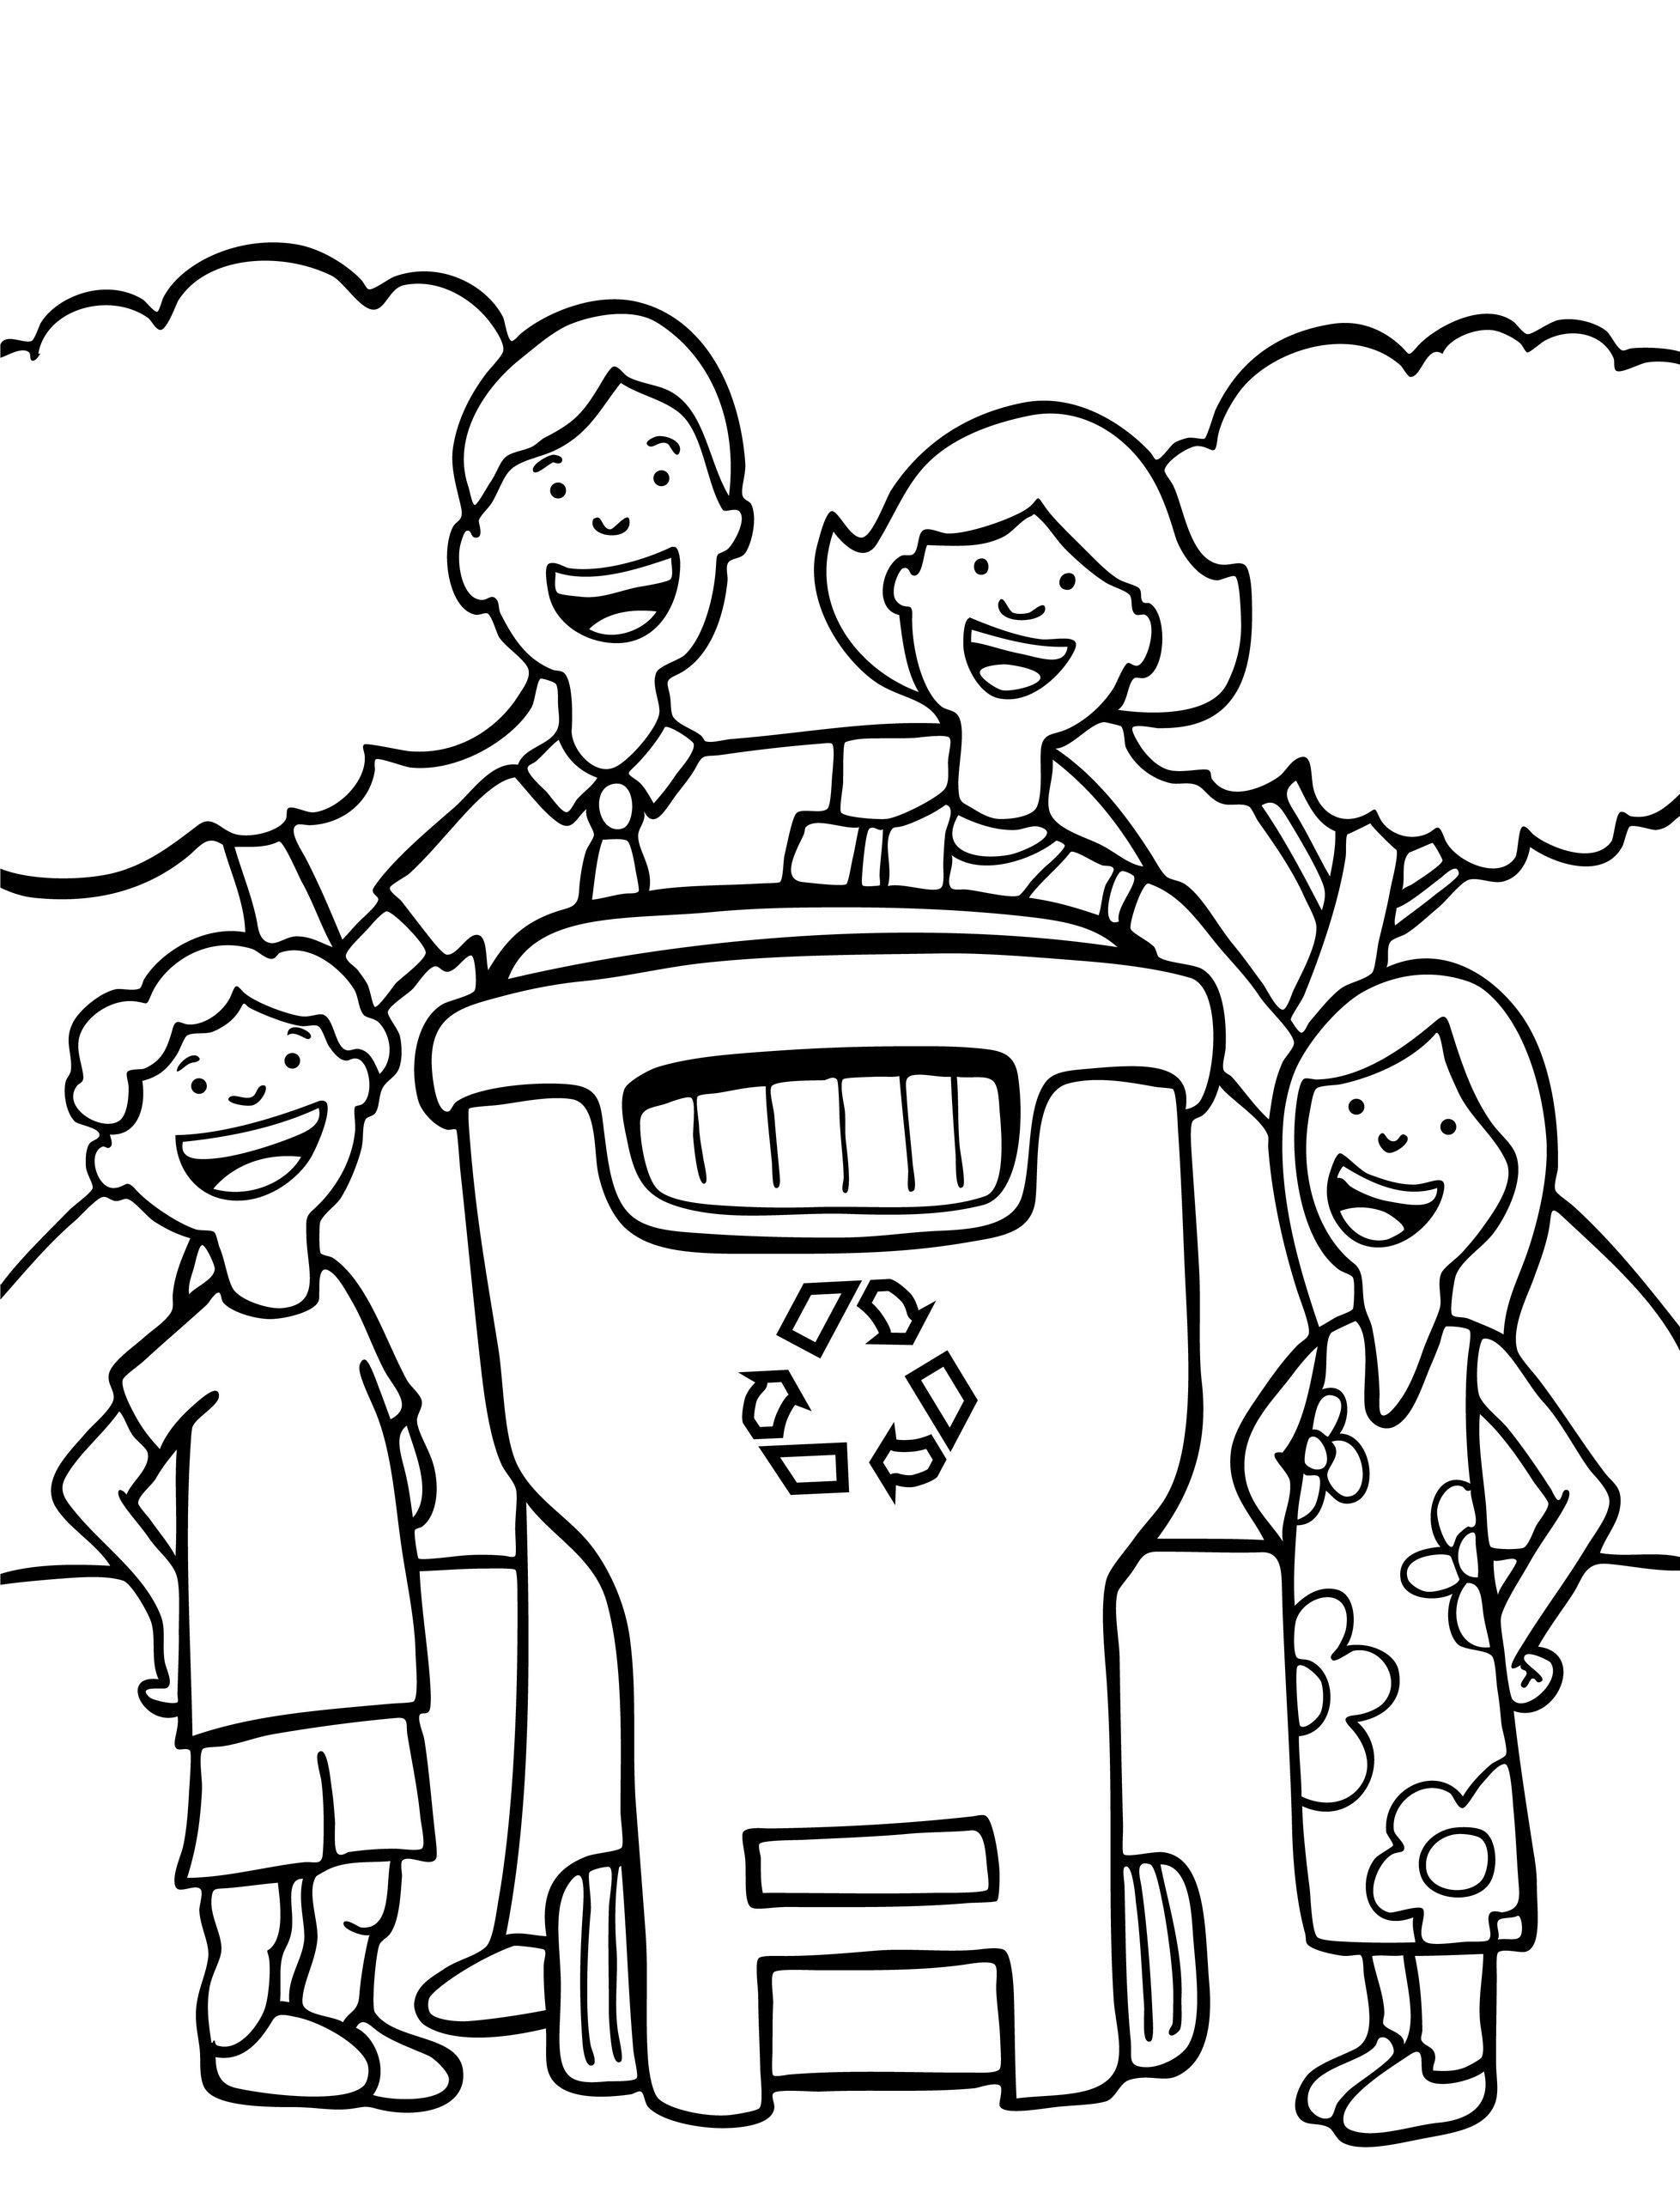 Environmental coloring activities - Free Earth Day Coloring Page For Children Let S Recycle